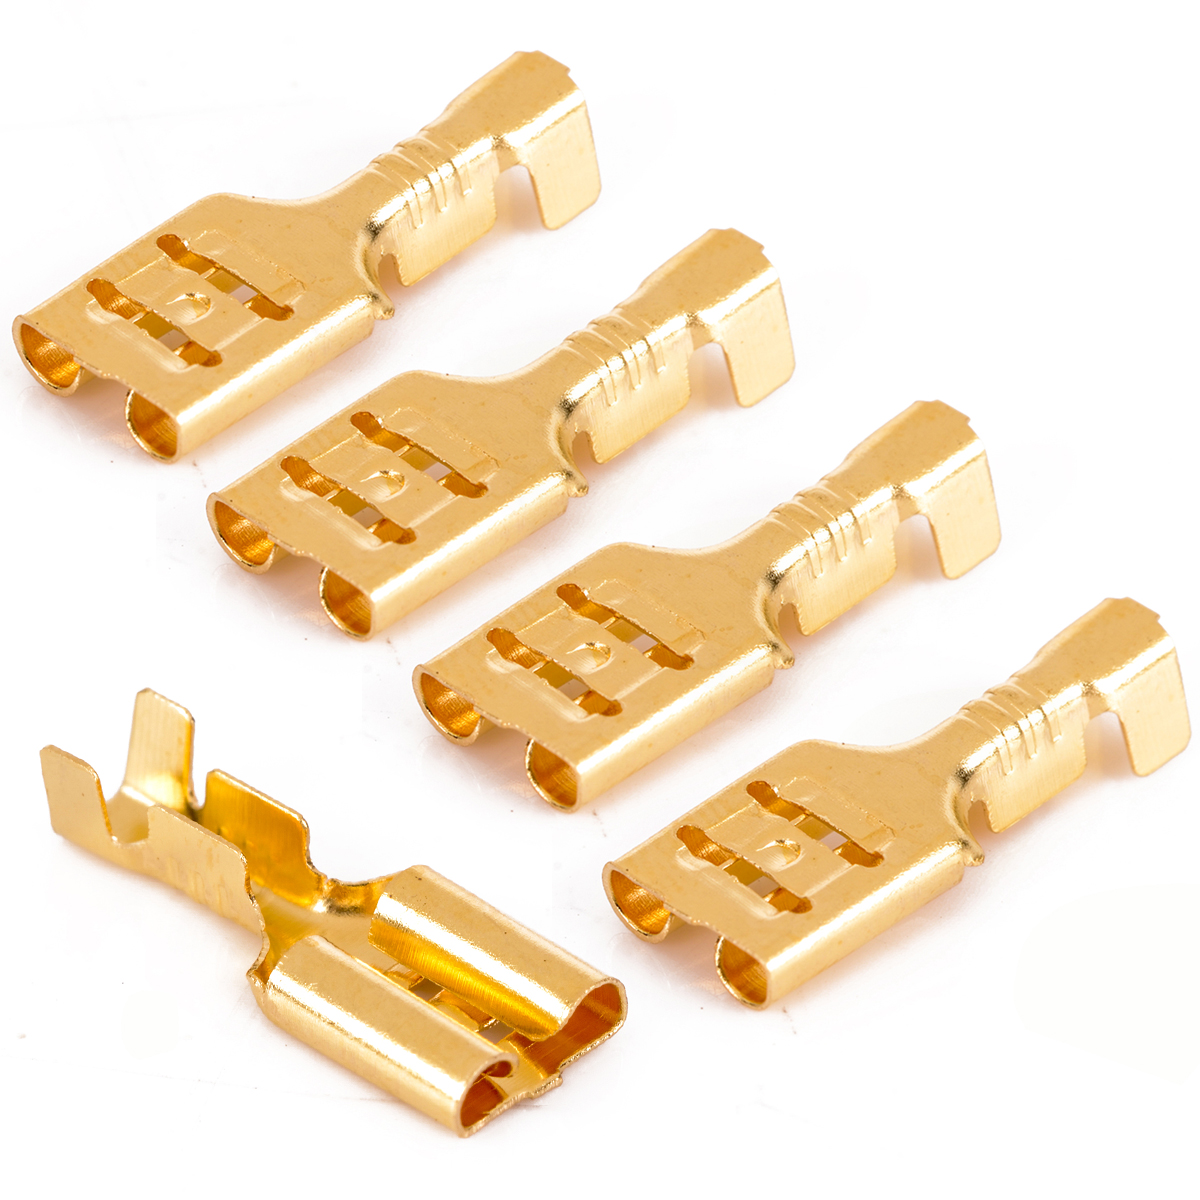 100 pieces gold brass female spade terminals car speaker electrical wire cable connector. Black Bedroom Furniture Sets. Home Design Ideas